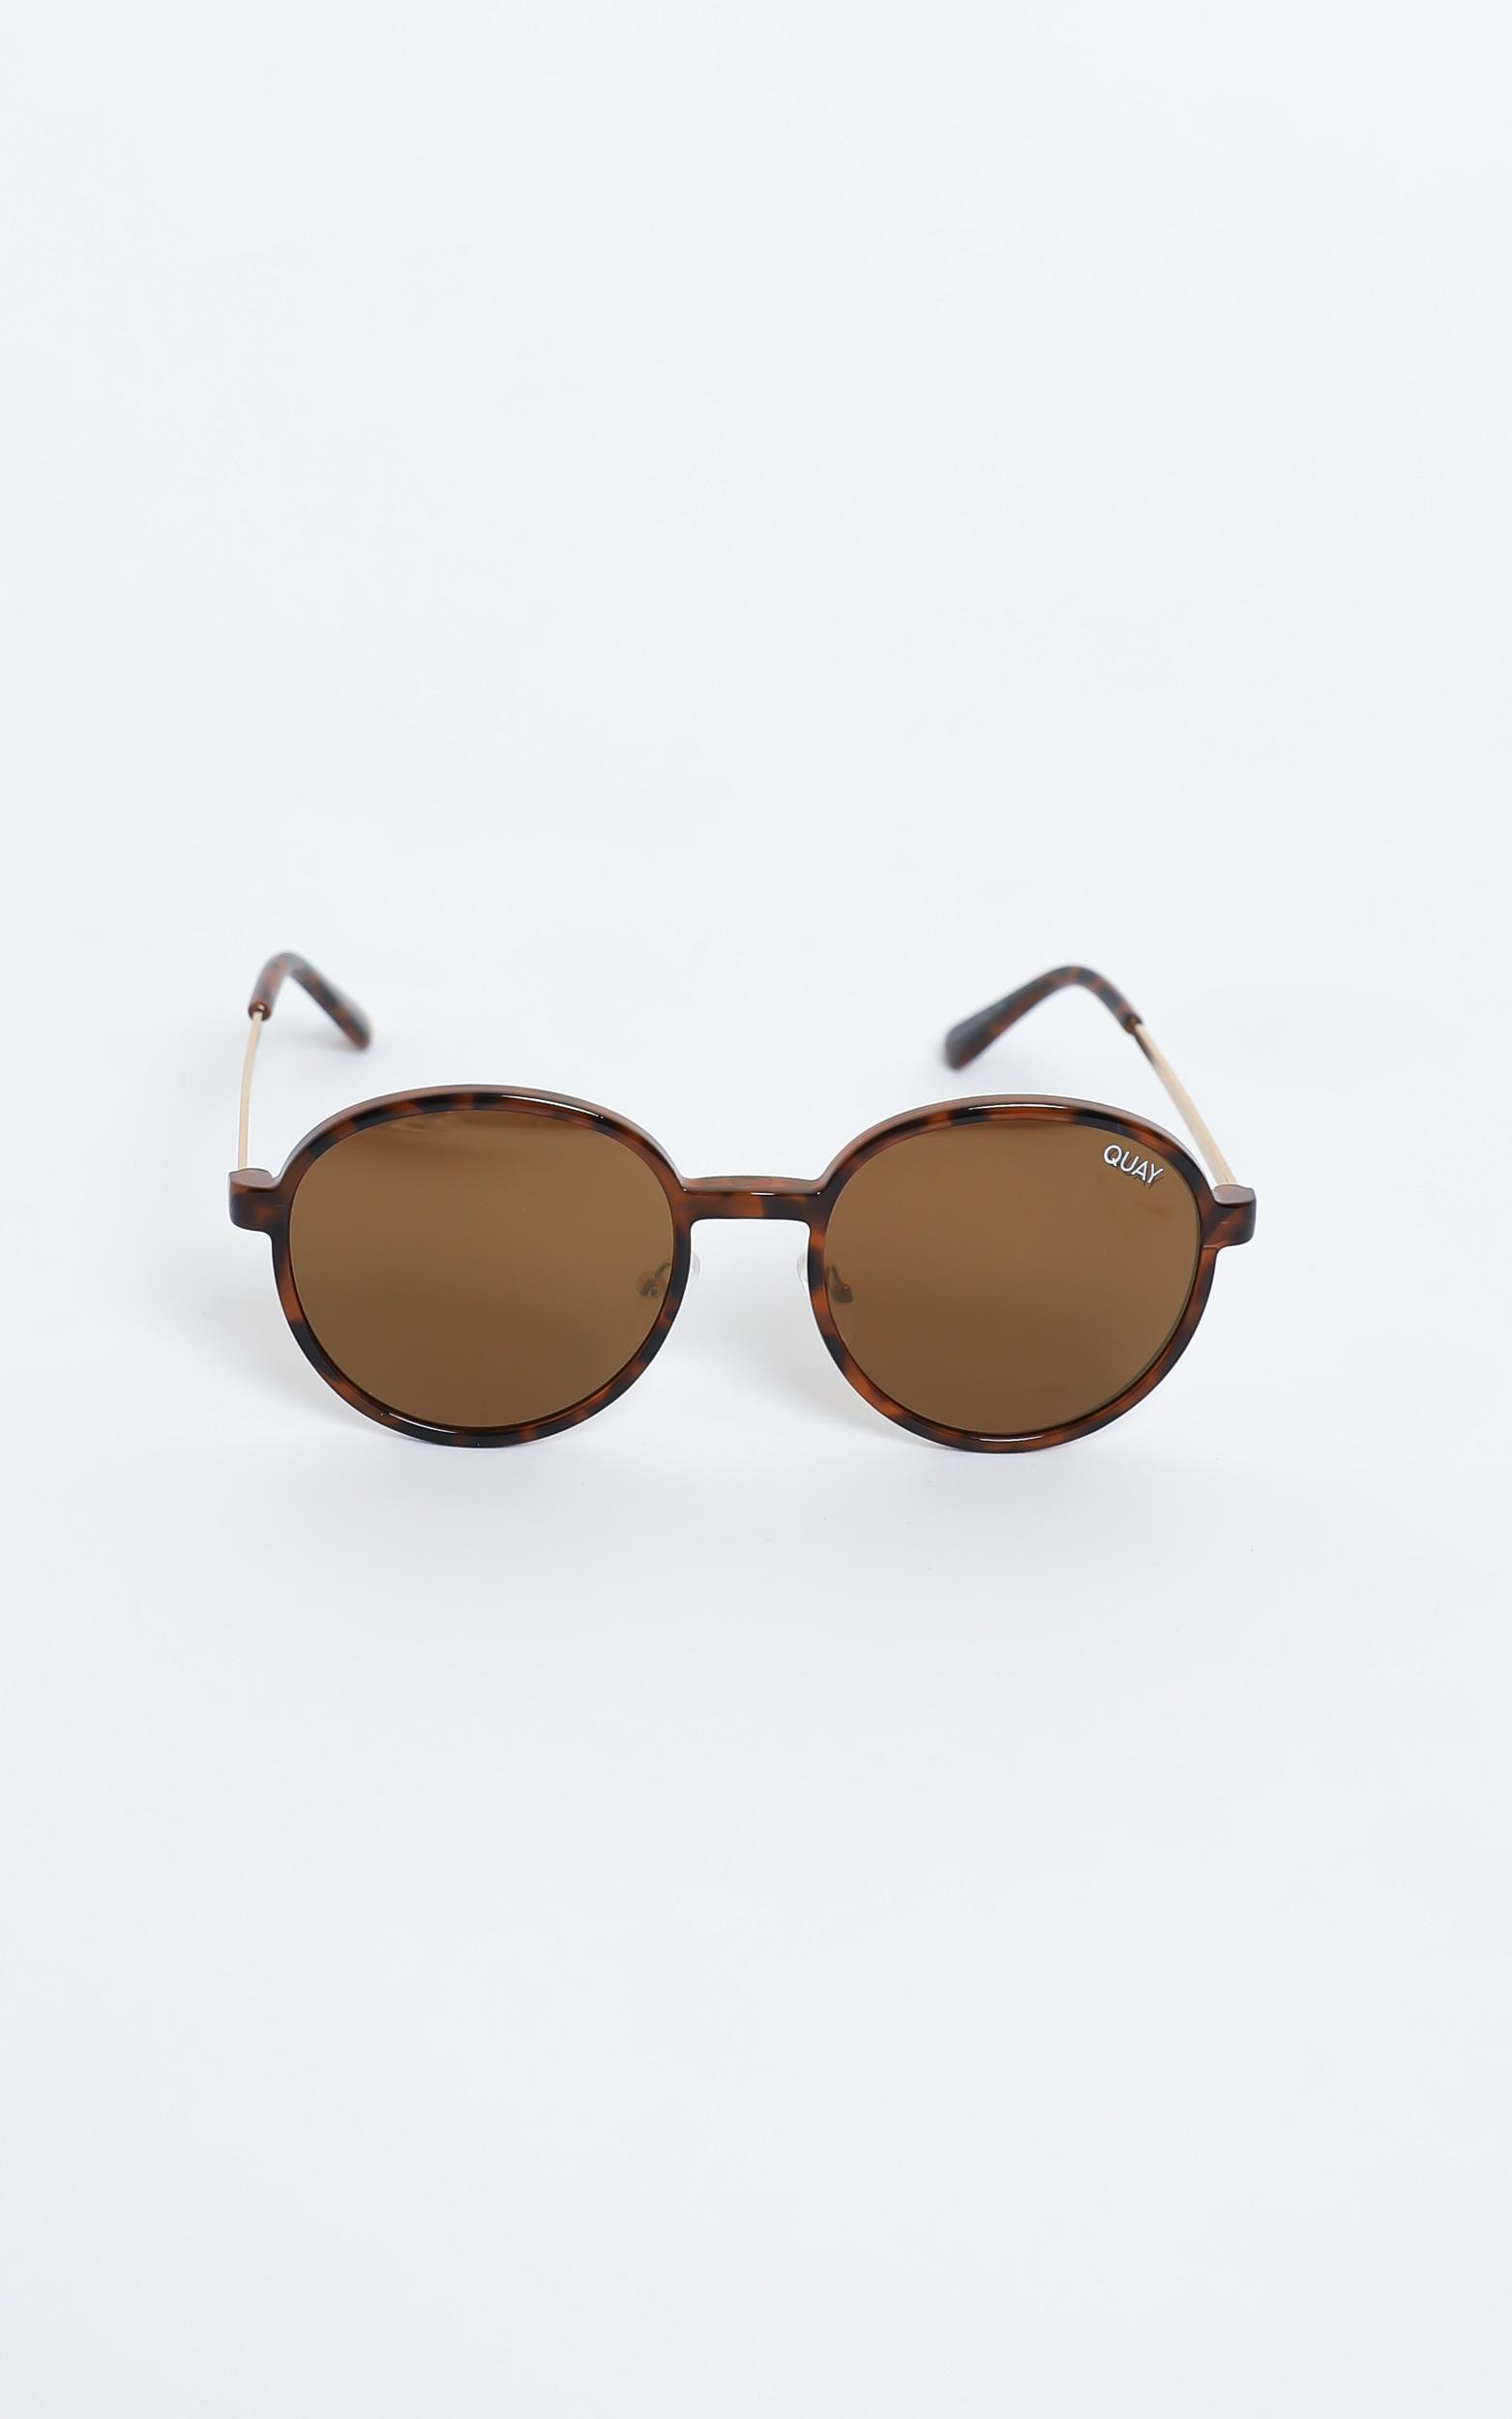 Quay - I See You Clip On Sunglasses in Tort/Brown, , hi-res image number null